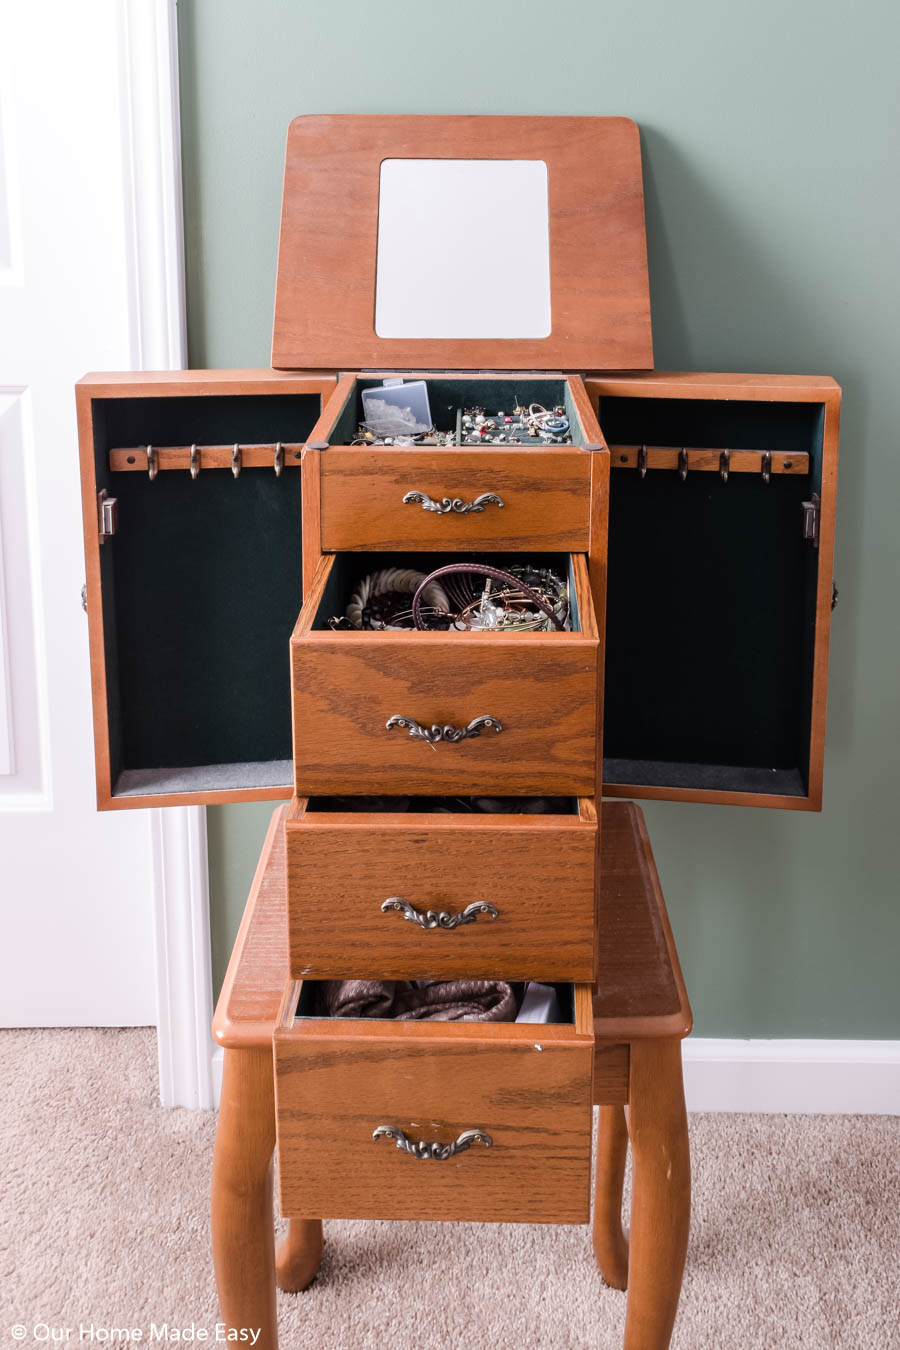 Ready to organize your jewelry? Start by clearing out your jewelry holder